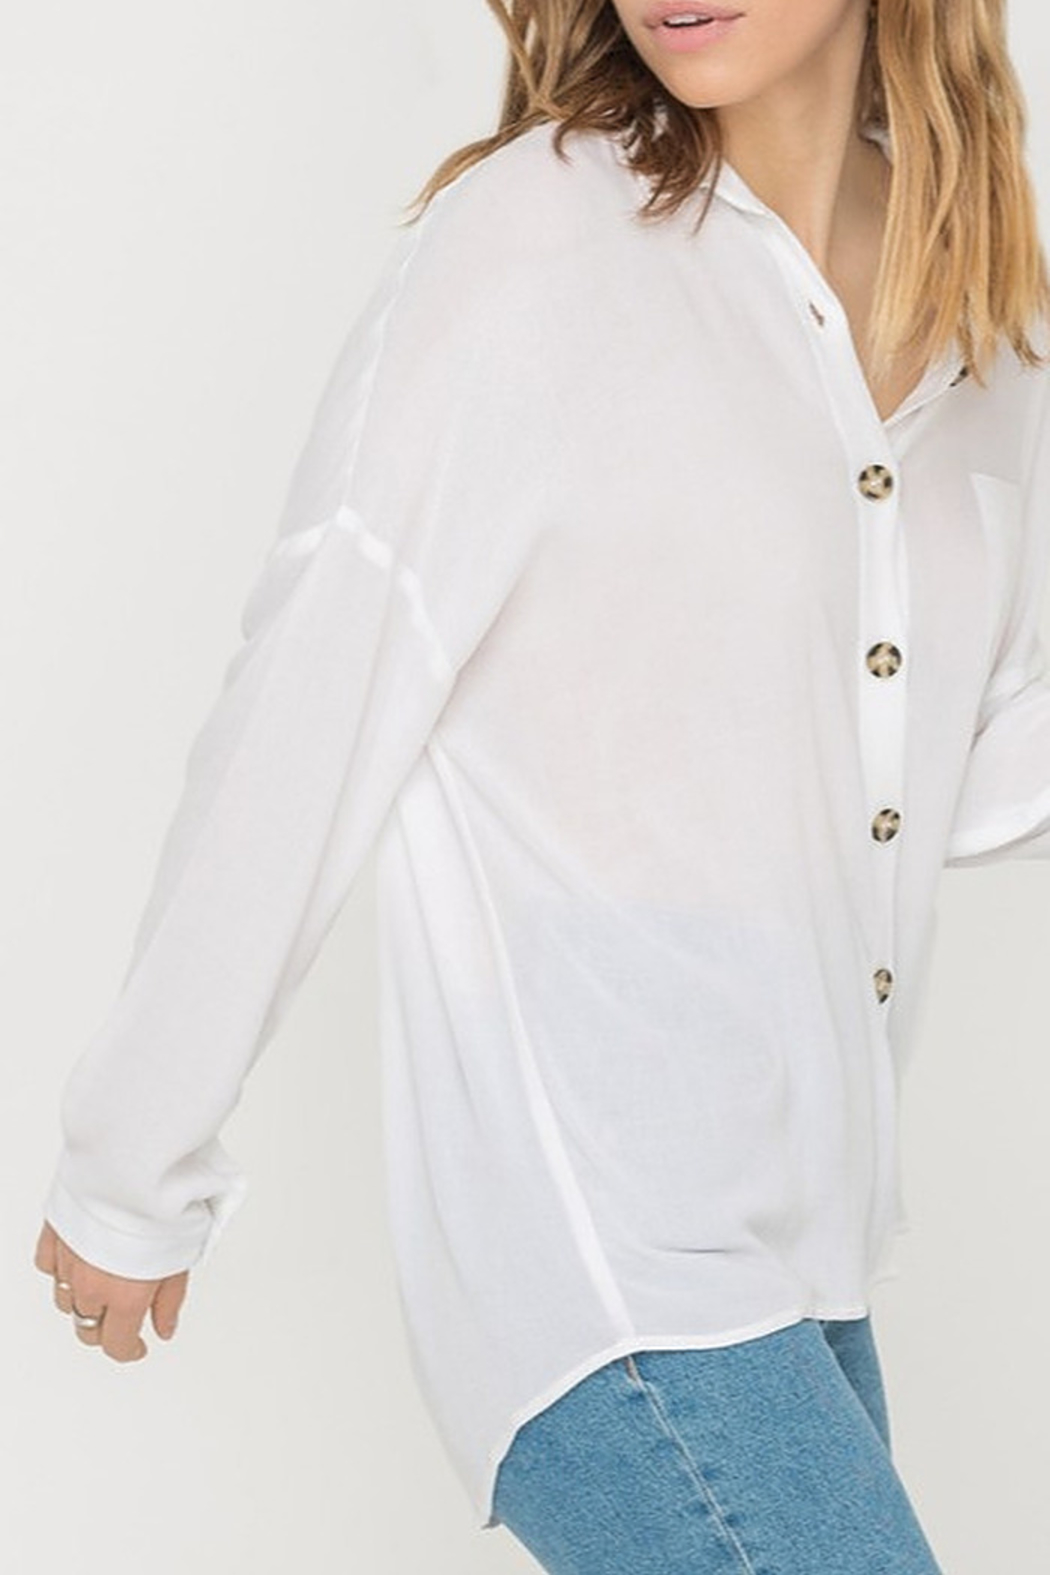 All In Favor Oversized Buttoned Tunic Blouse - Front Full Image